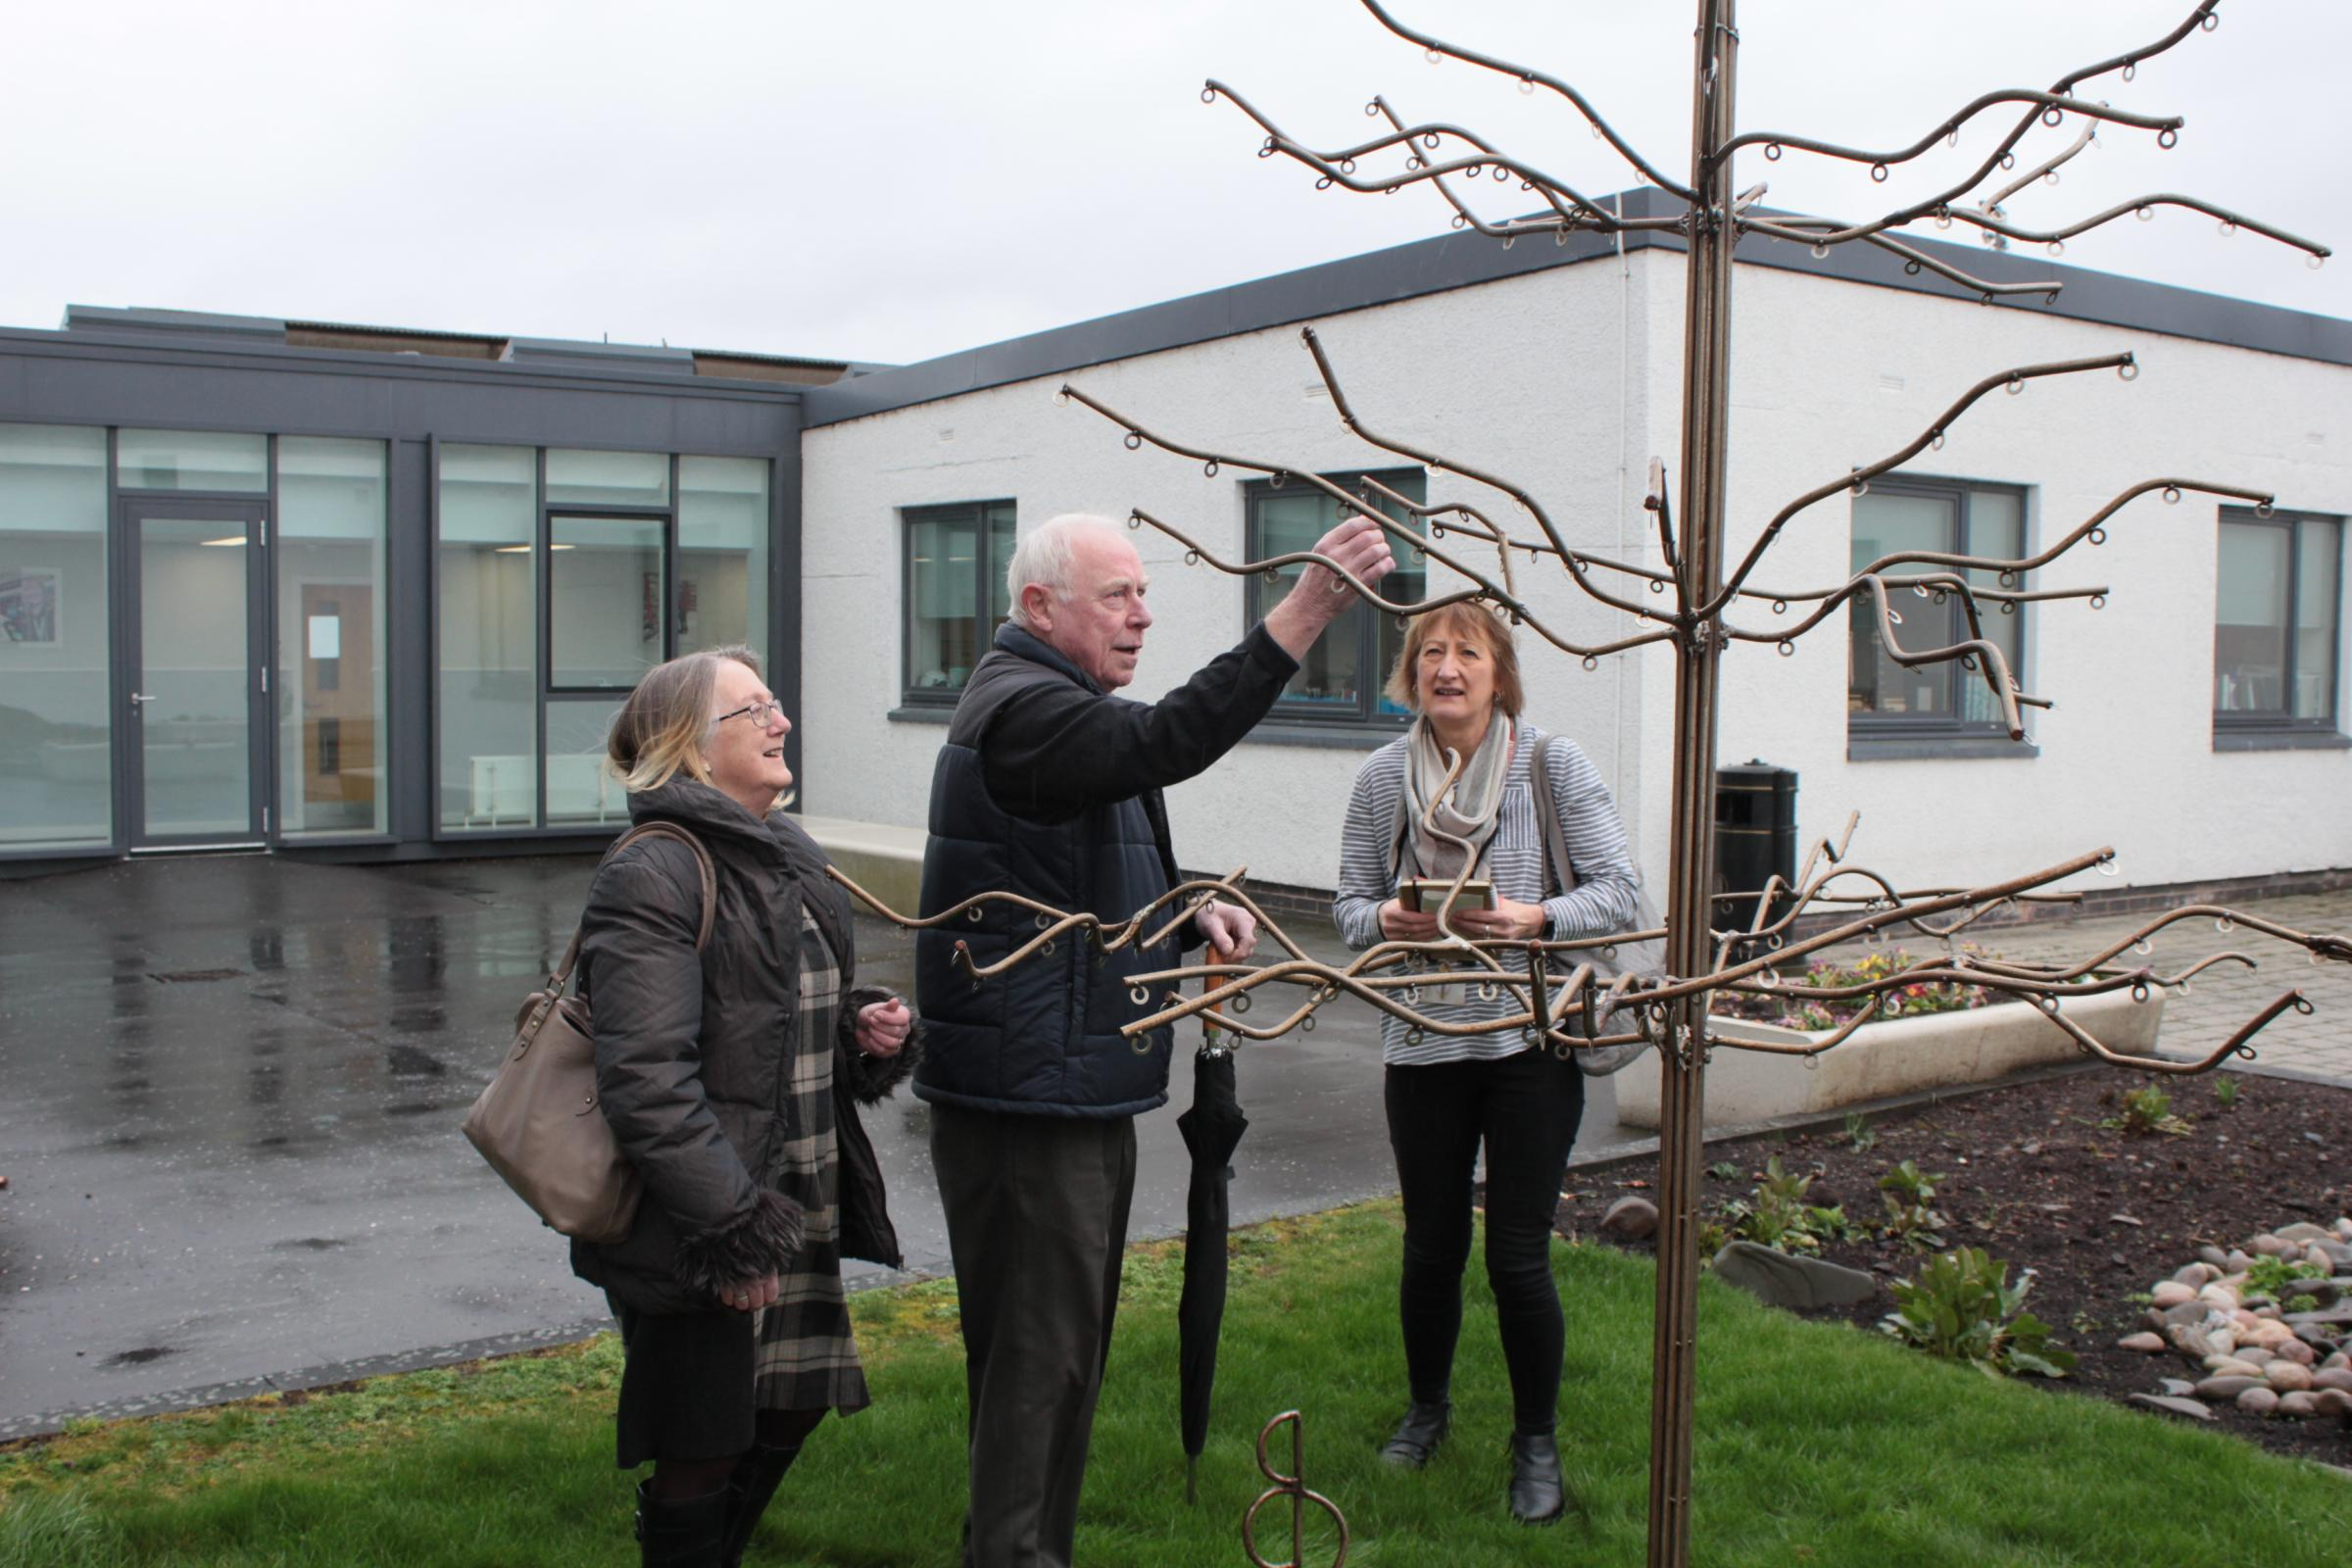 Stuart's parents, Sheila and Ian, were invited to give the tree its first leaf.